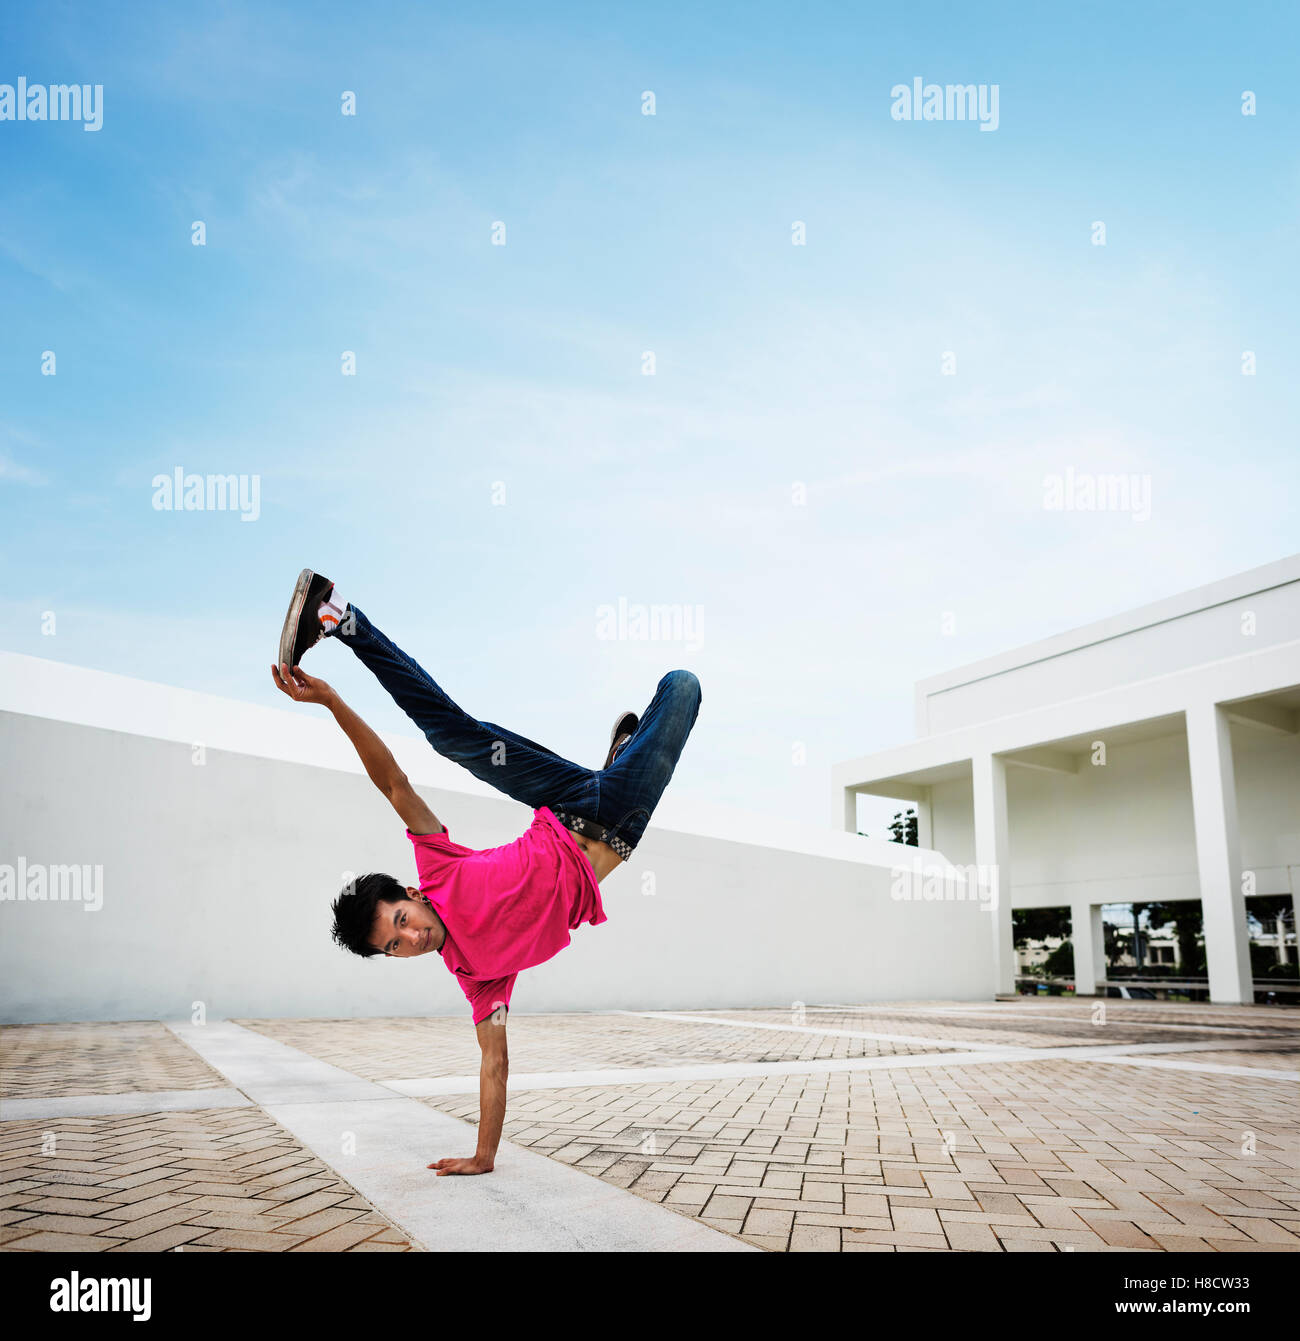 Breakdance Movement Teenagers Trendy Lifestyle Concept - Stock Image